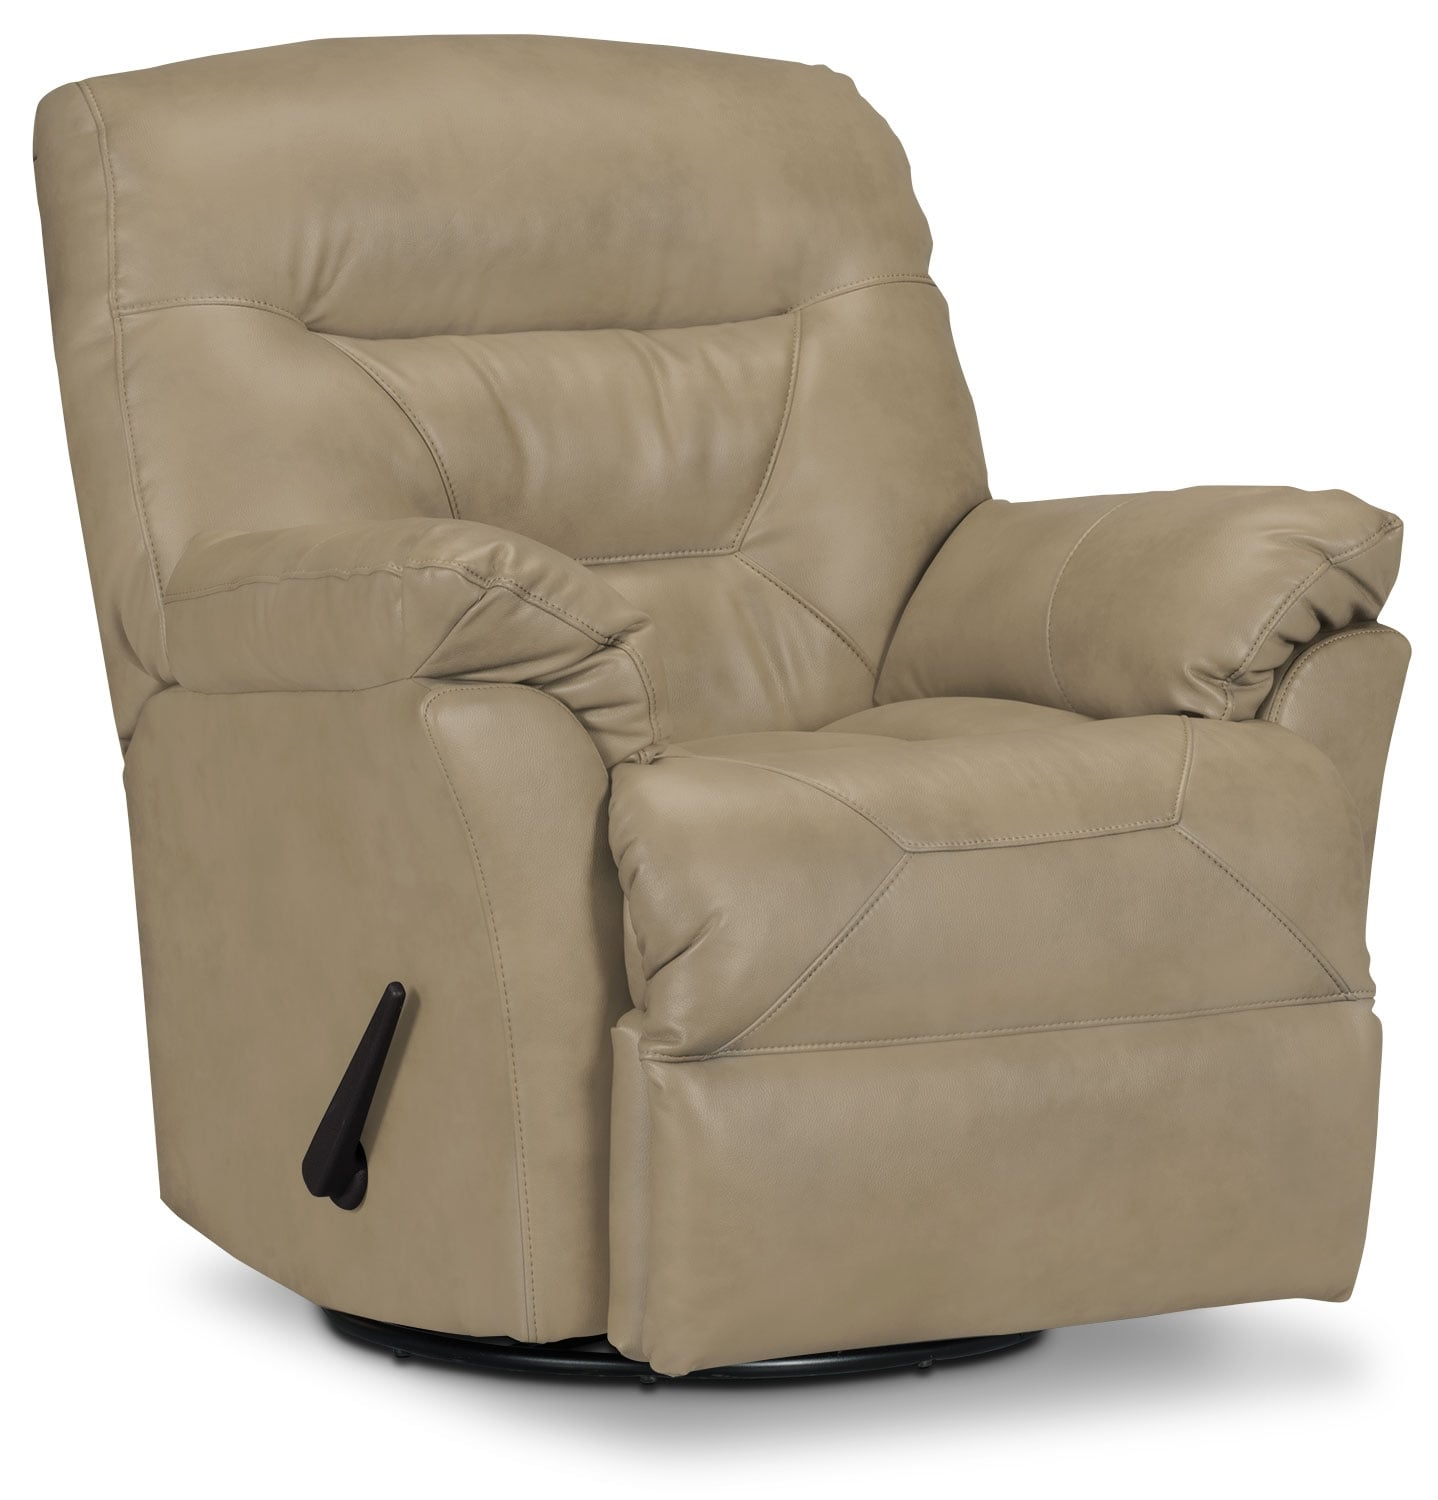 Living Room Furniture - Designed2B Recliner 4579 Genuine Leather Swivel Glider Recliner - Putty